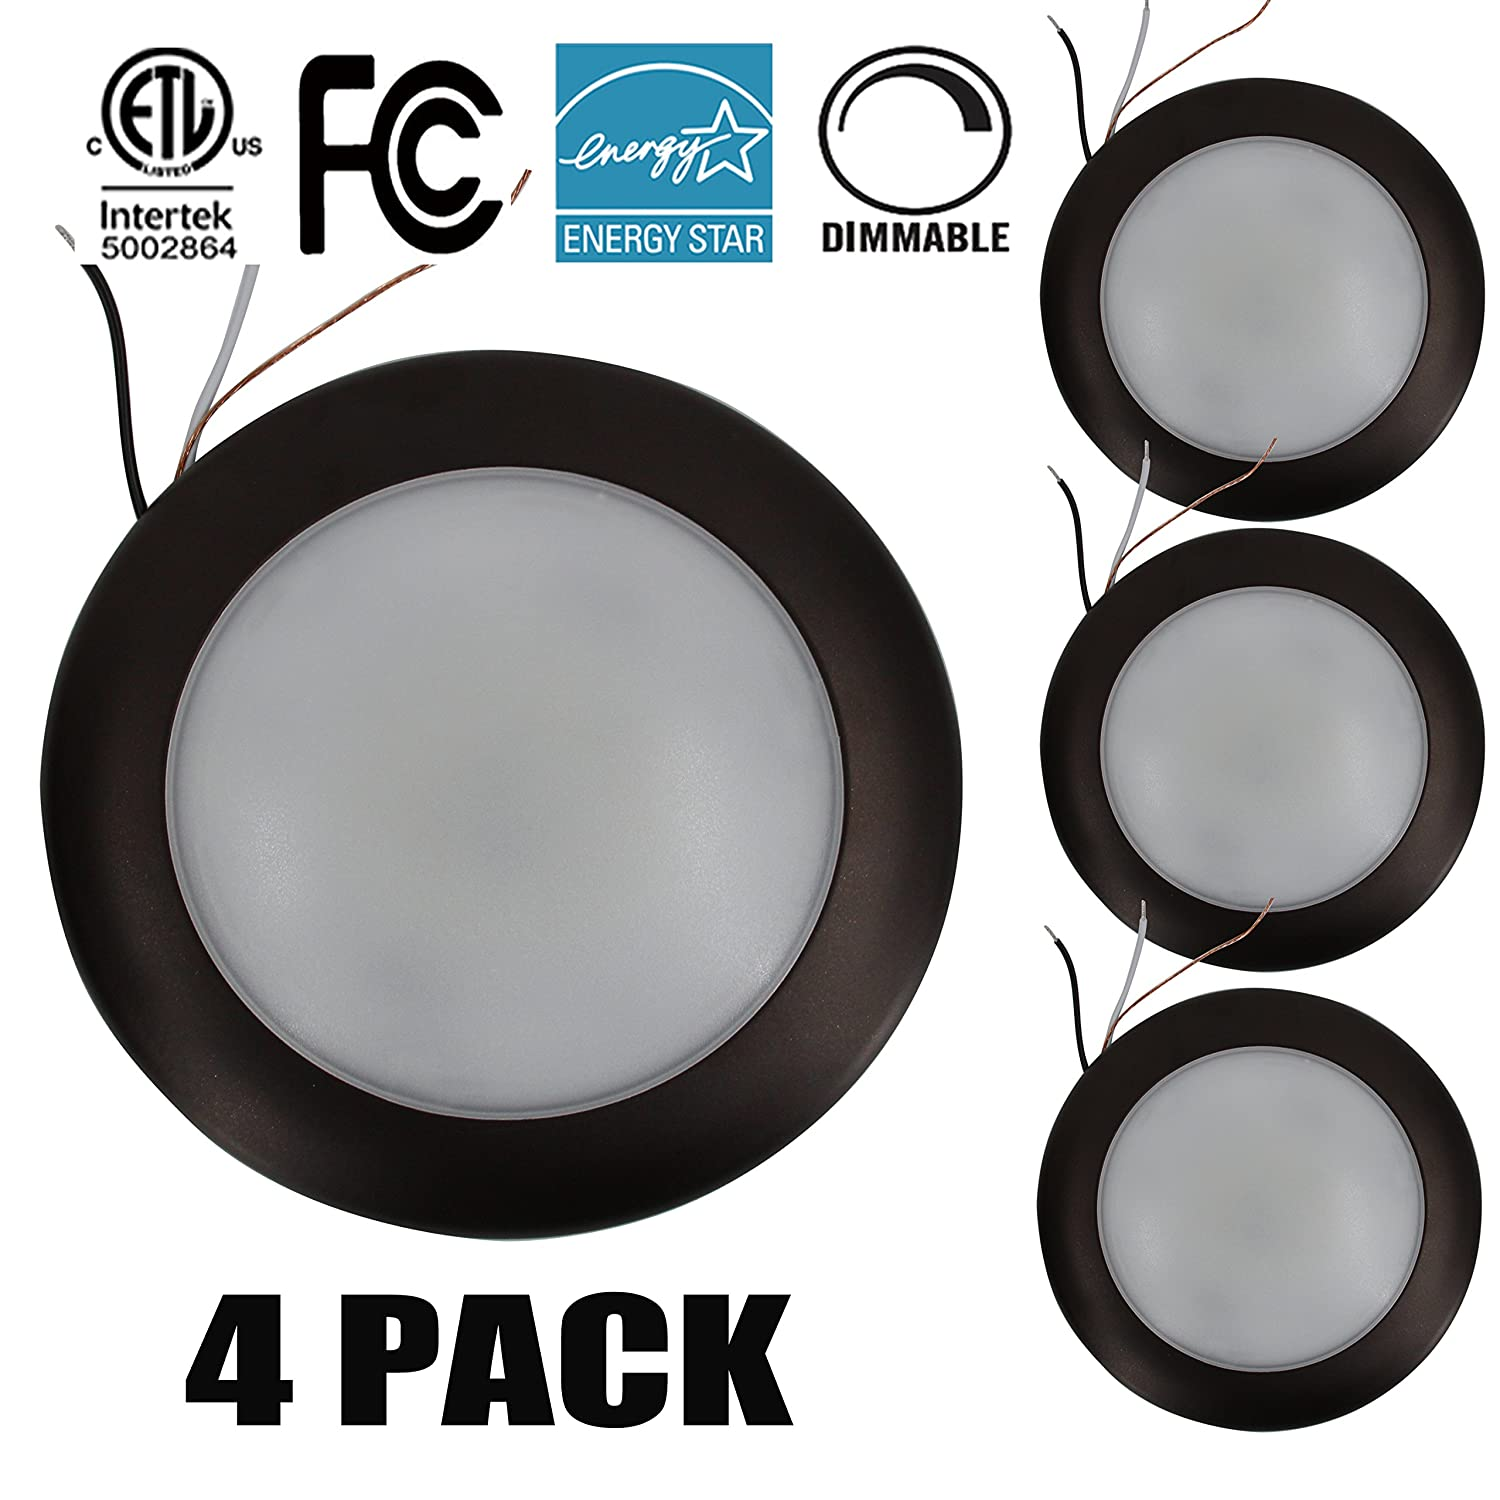 15W 7.5 Dimmable LED Disk Light,Mini LED Ceiling light,Flush Mount Ceiling Fixture,LED Downlight (120W Replacement), Daylight, ENERGY STAR, Installs into ...